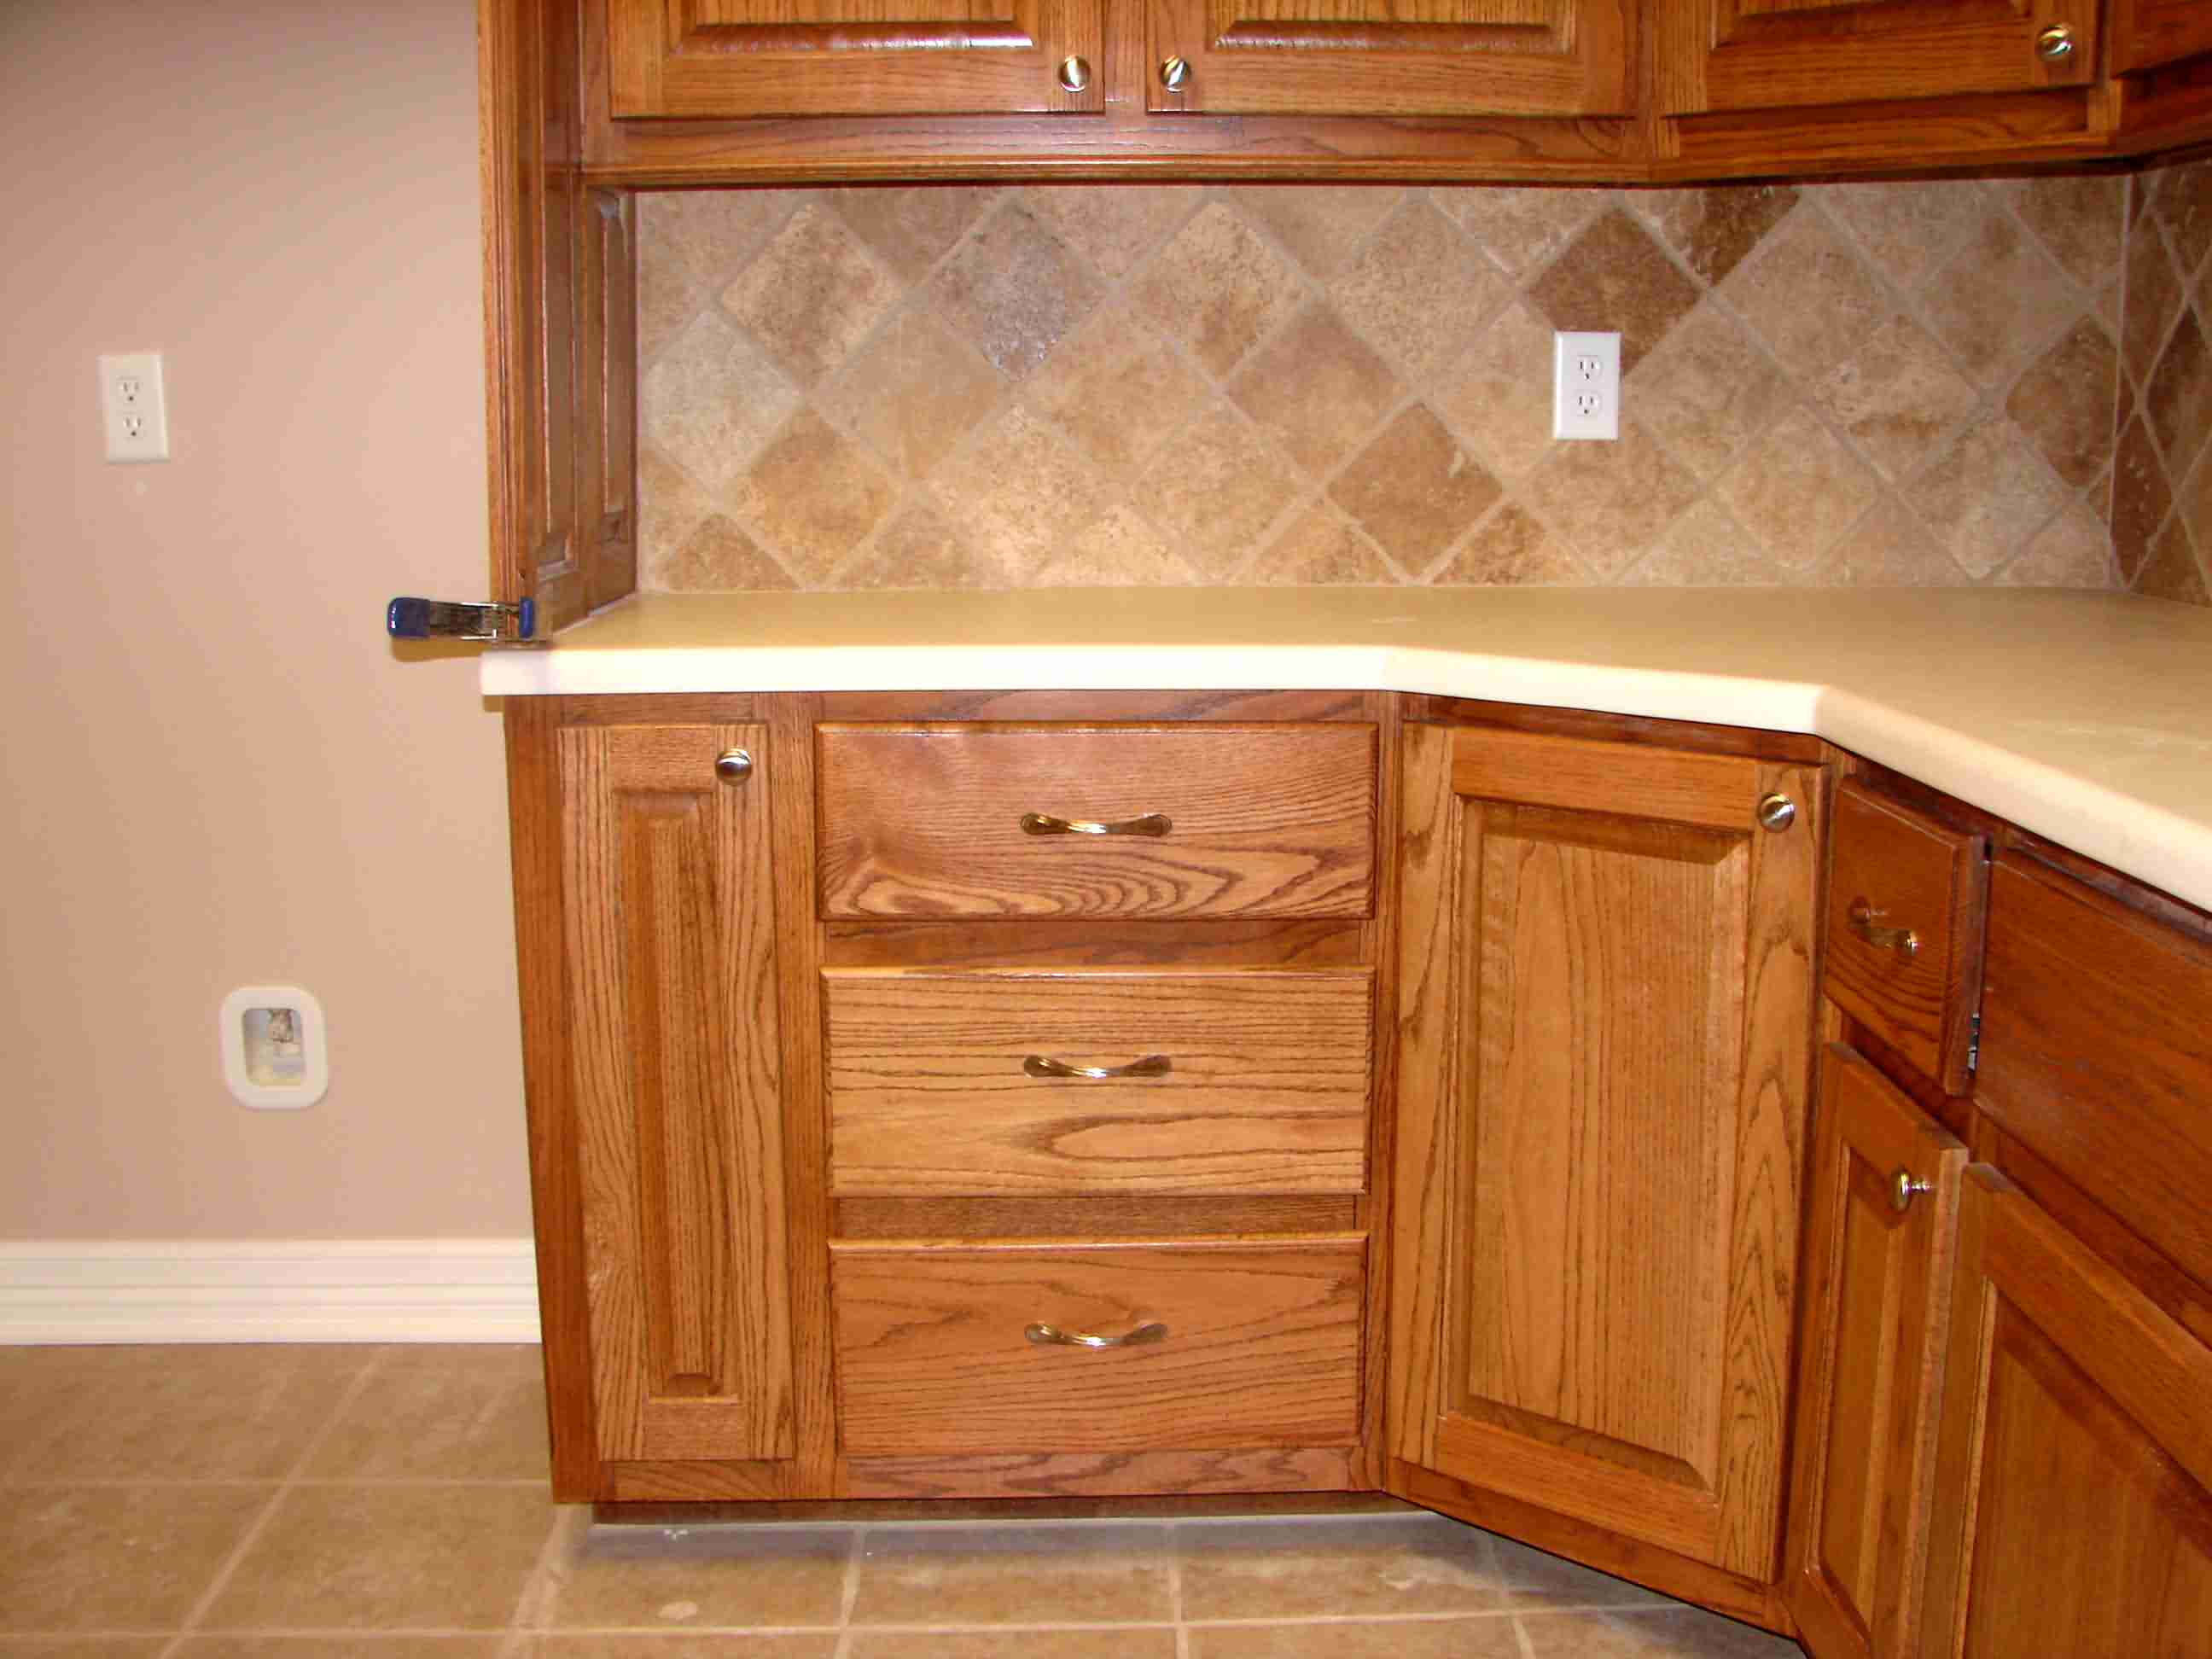 Kimboleeey corner kitchen cabinet ideas for Corner kitchen cabinets ideas